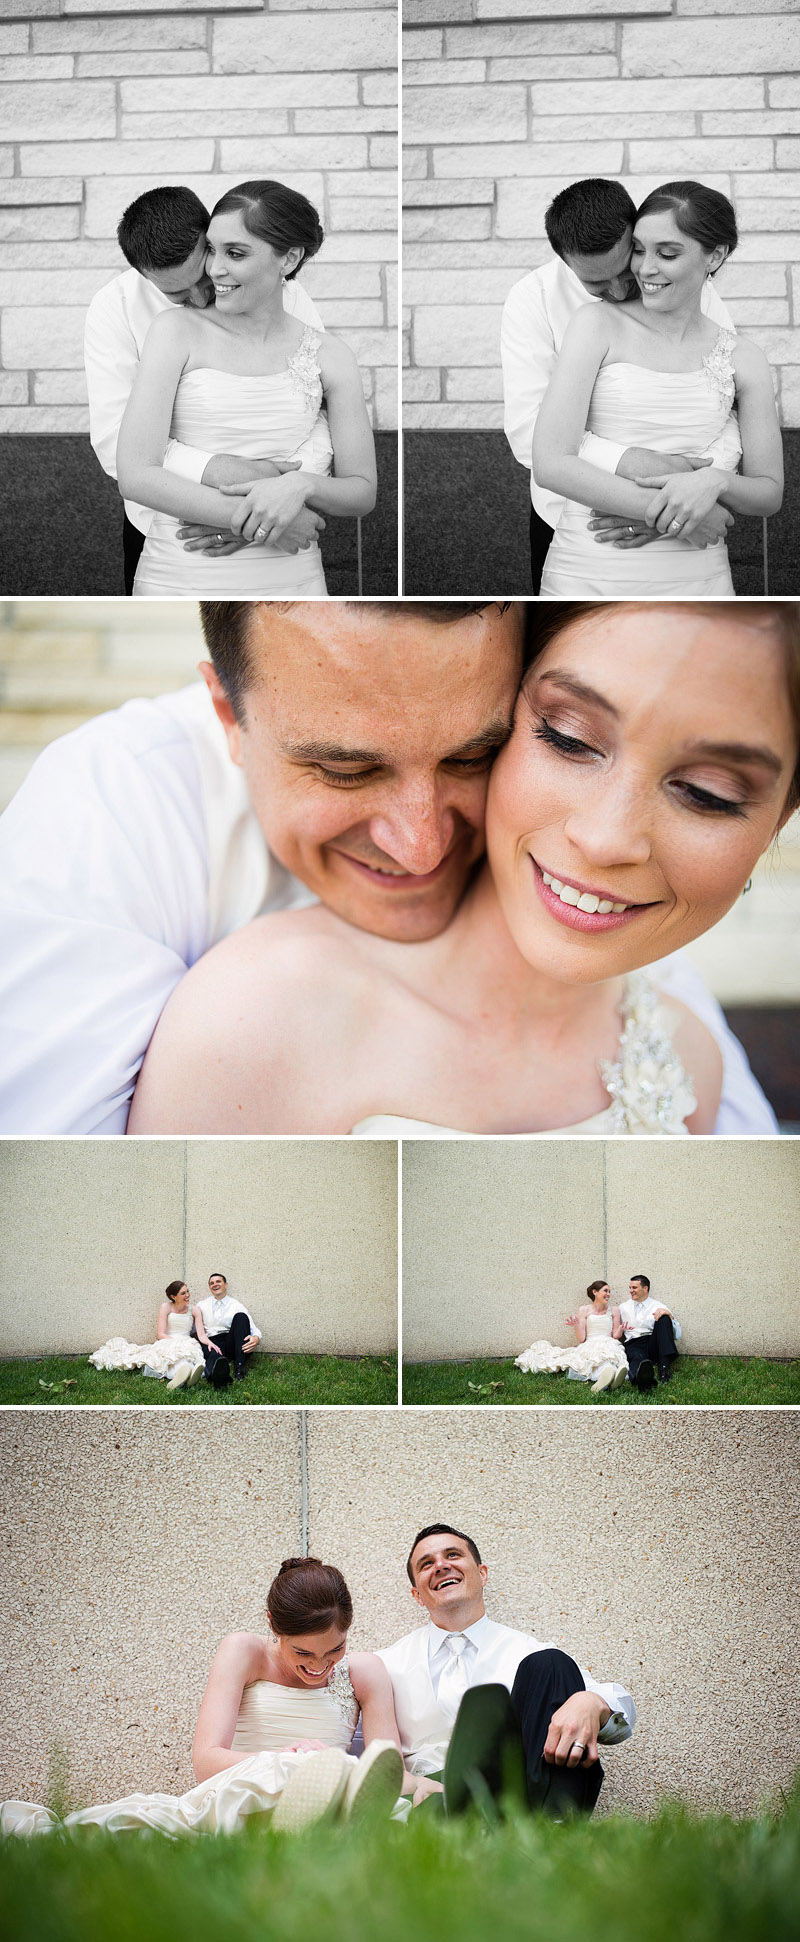 Beautiful wedding portraits.